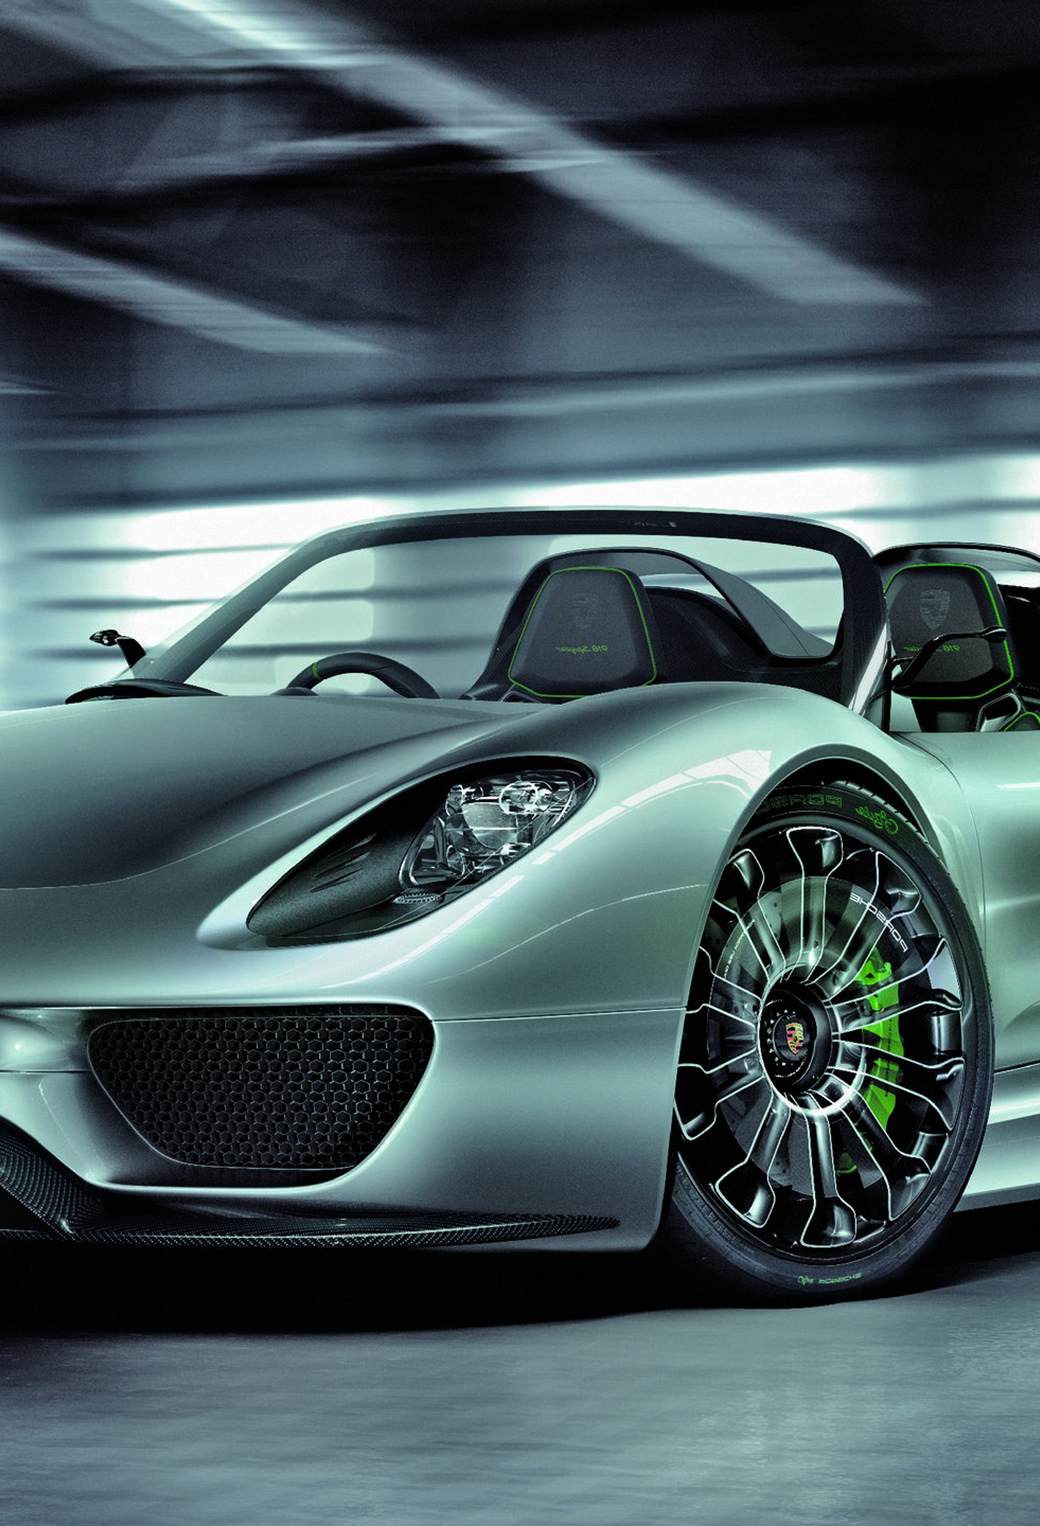 porsche 918 spyder 3wallpapers iphone parallax - Porsche 918 Spyder Wallpaper